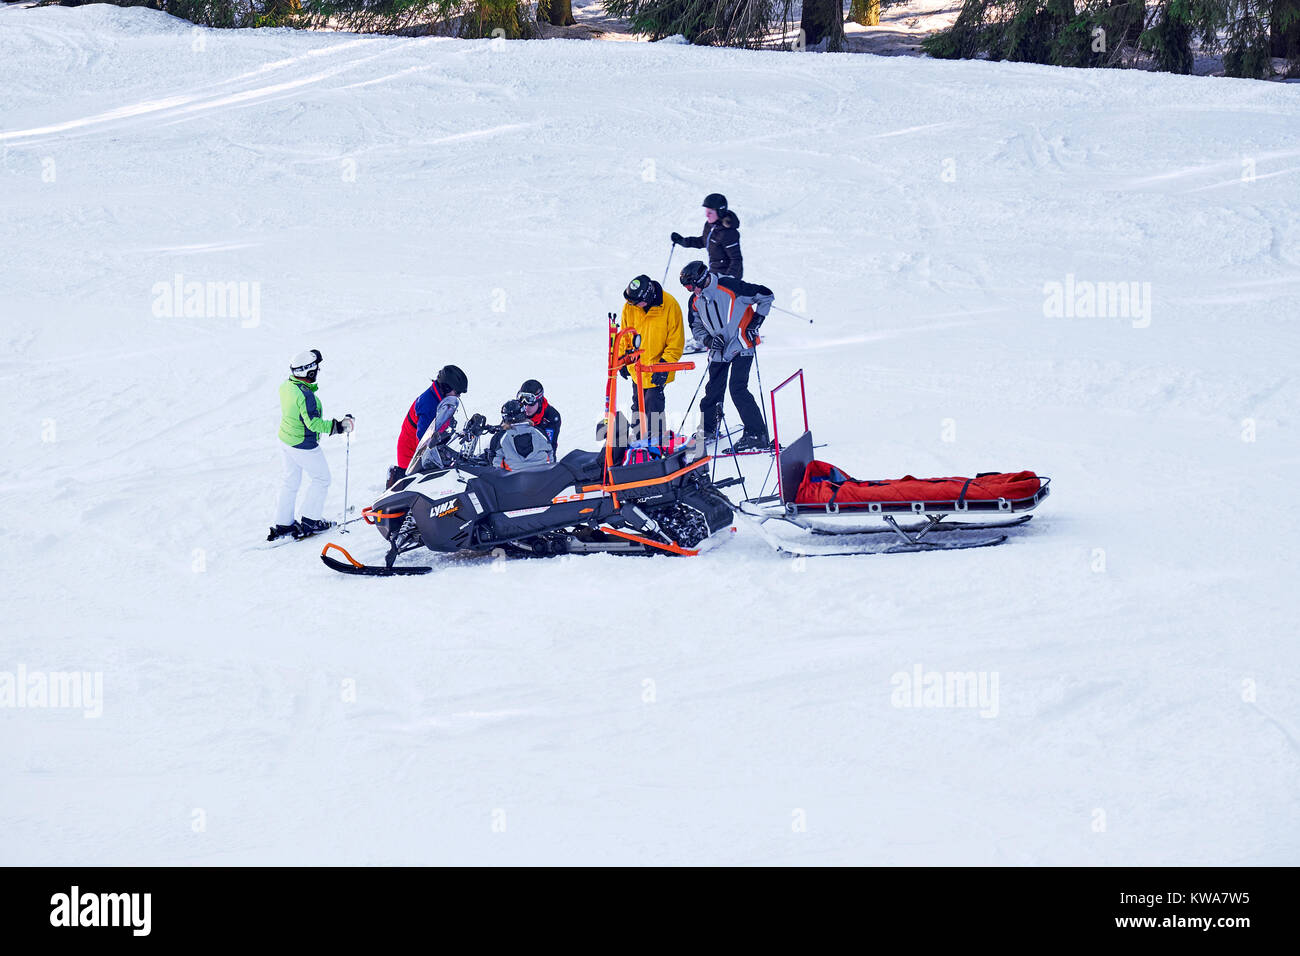 WINTERBERG, GERMANY - FEBRUARY 15, 2017: Rescue snowmobile at an injured skier on a ski slope - Stock Image